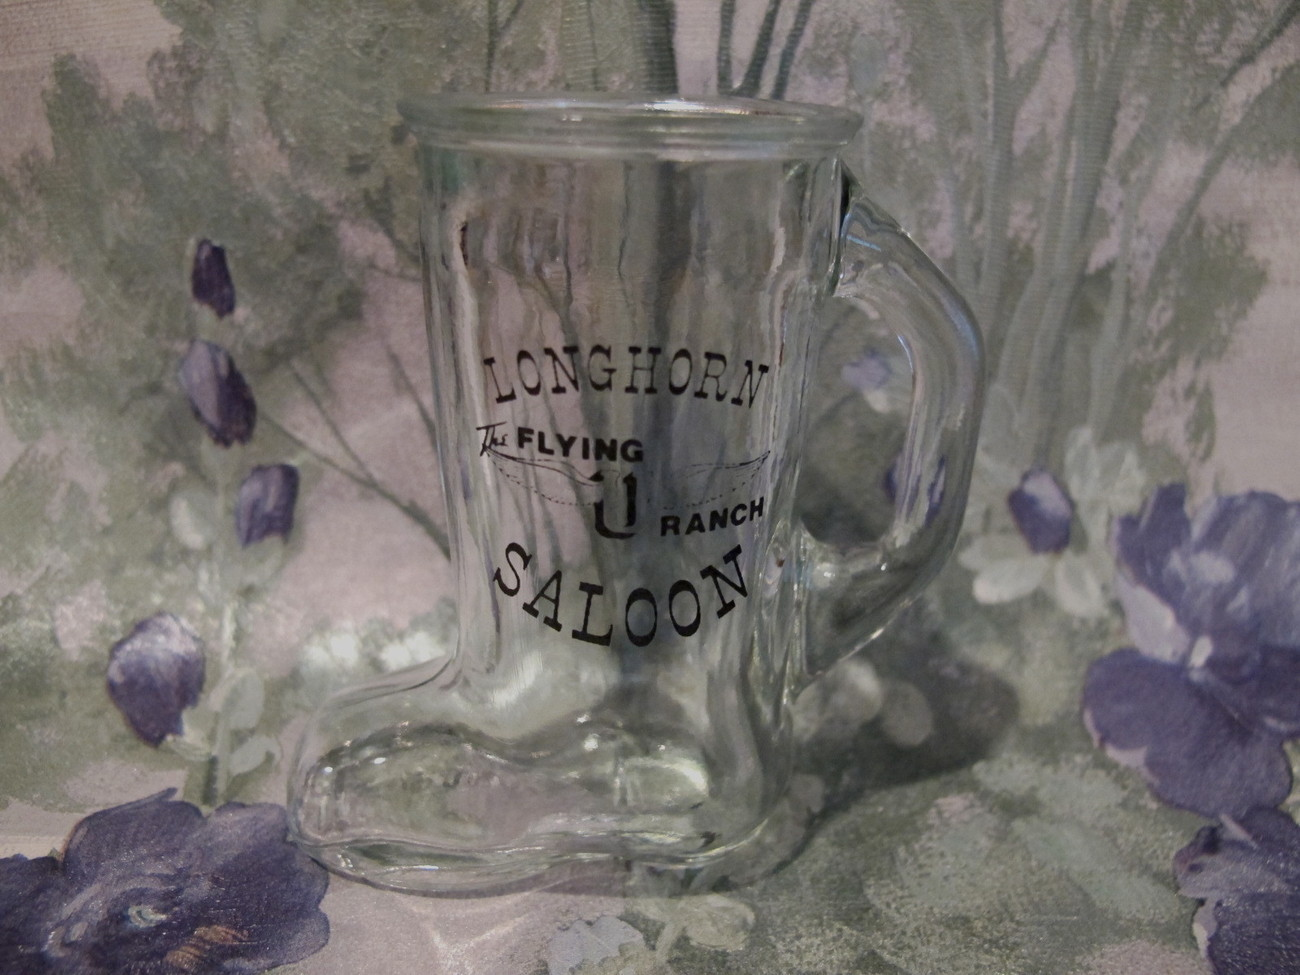 Primary image for The Flying U Ranch Longhorn Saloon Cowboy Boot Shot Glass Souvenir Collector